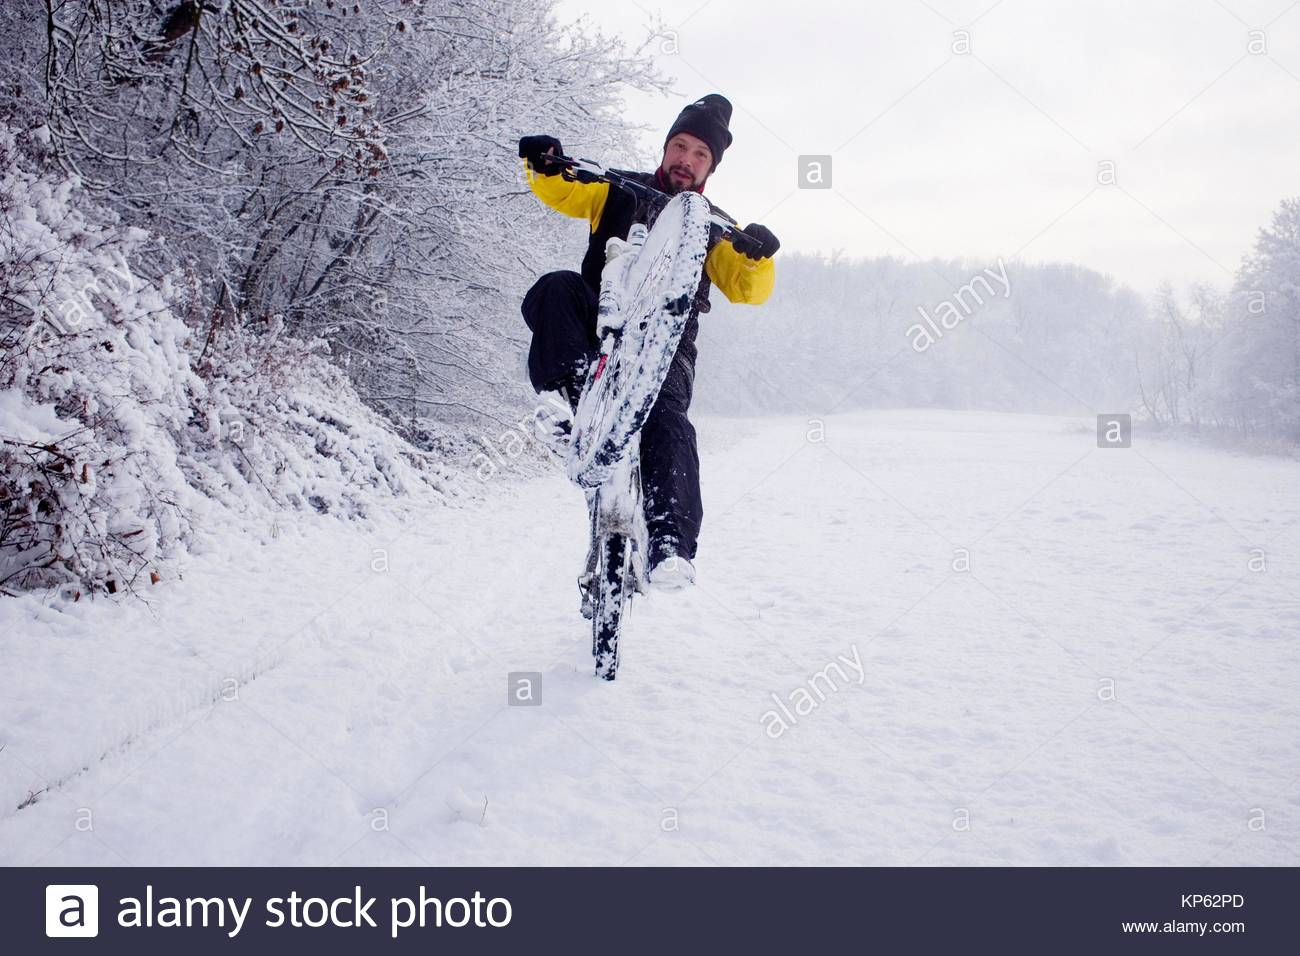 cyclist enjoys riding on snow-covered trails - Stock Image